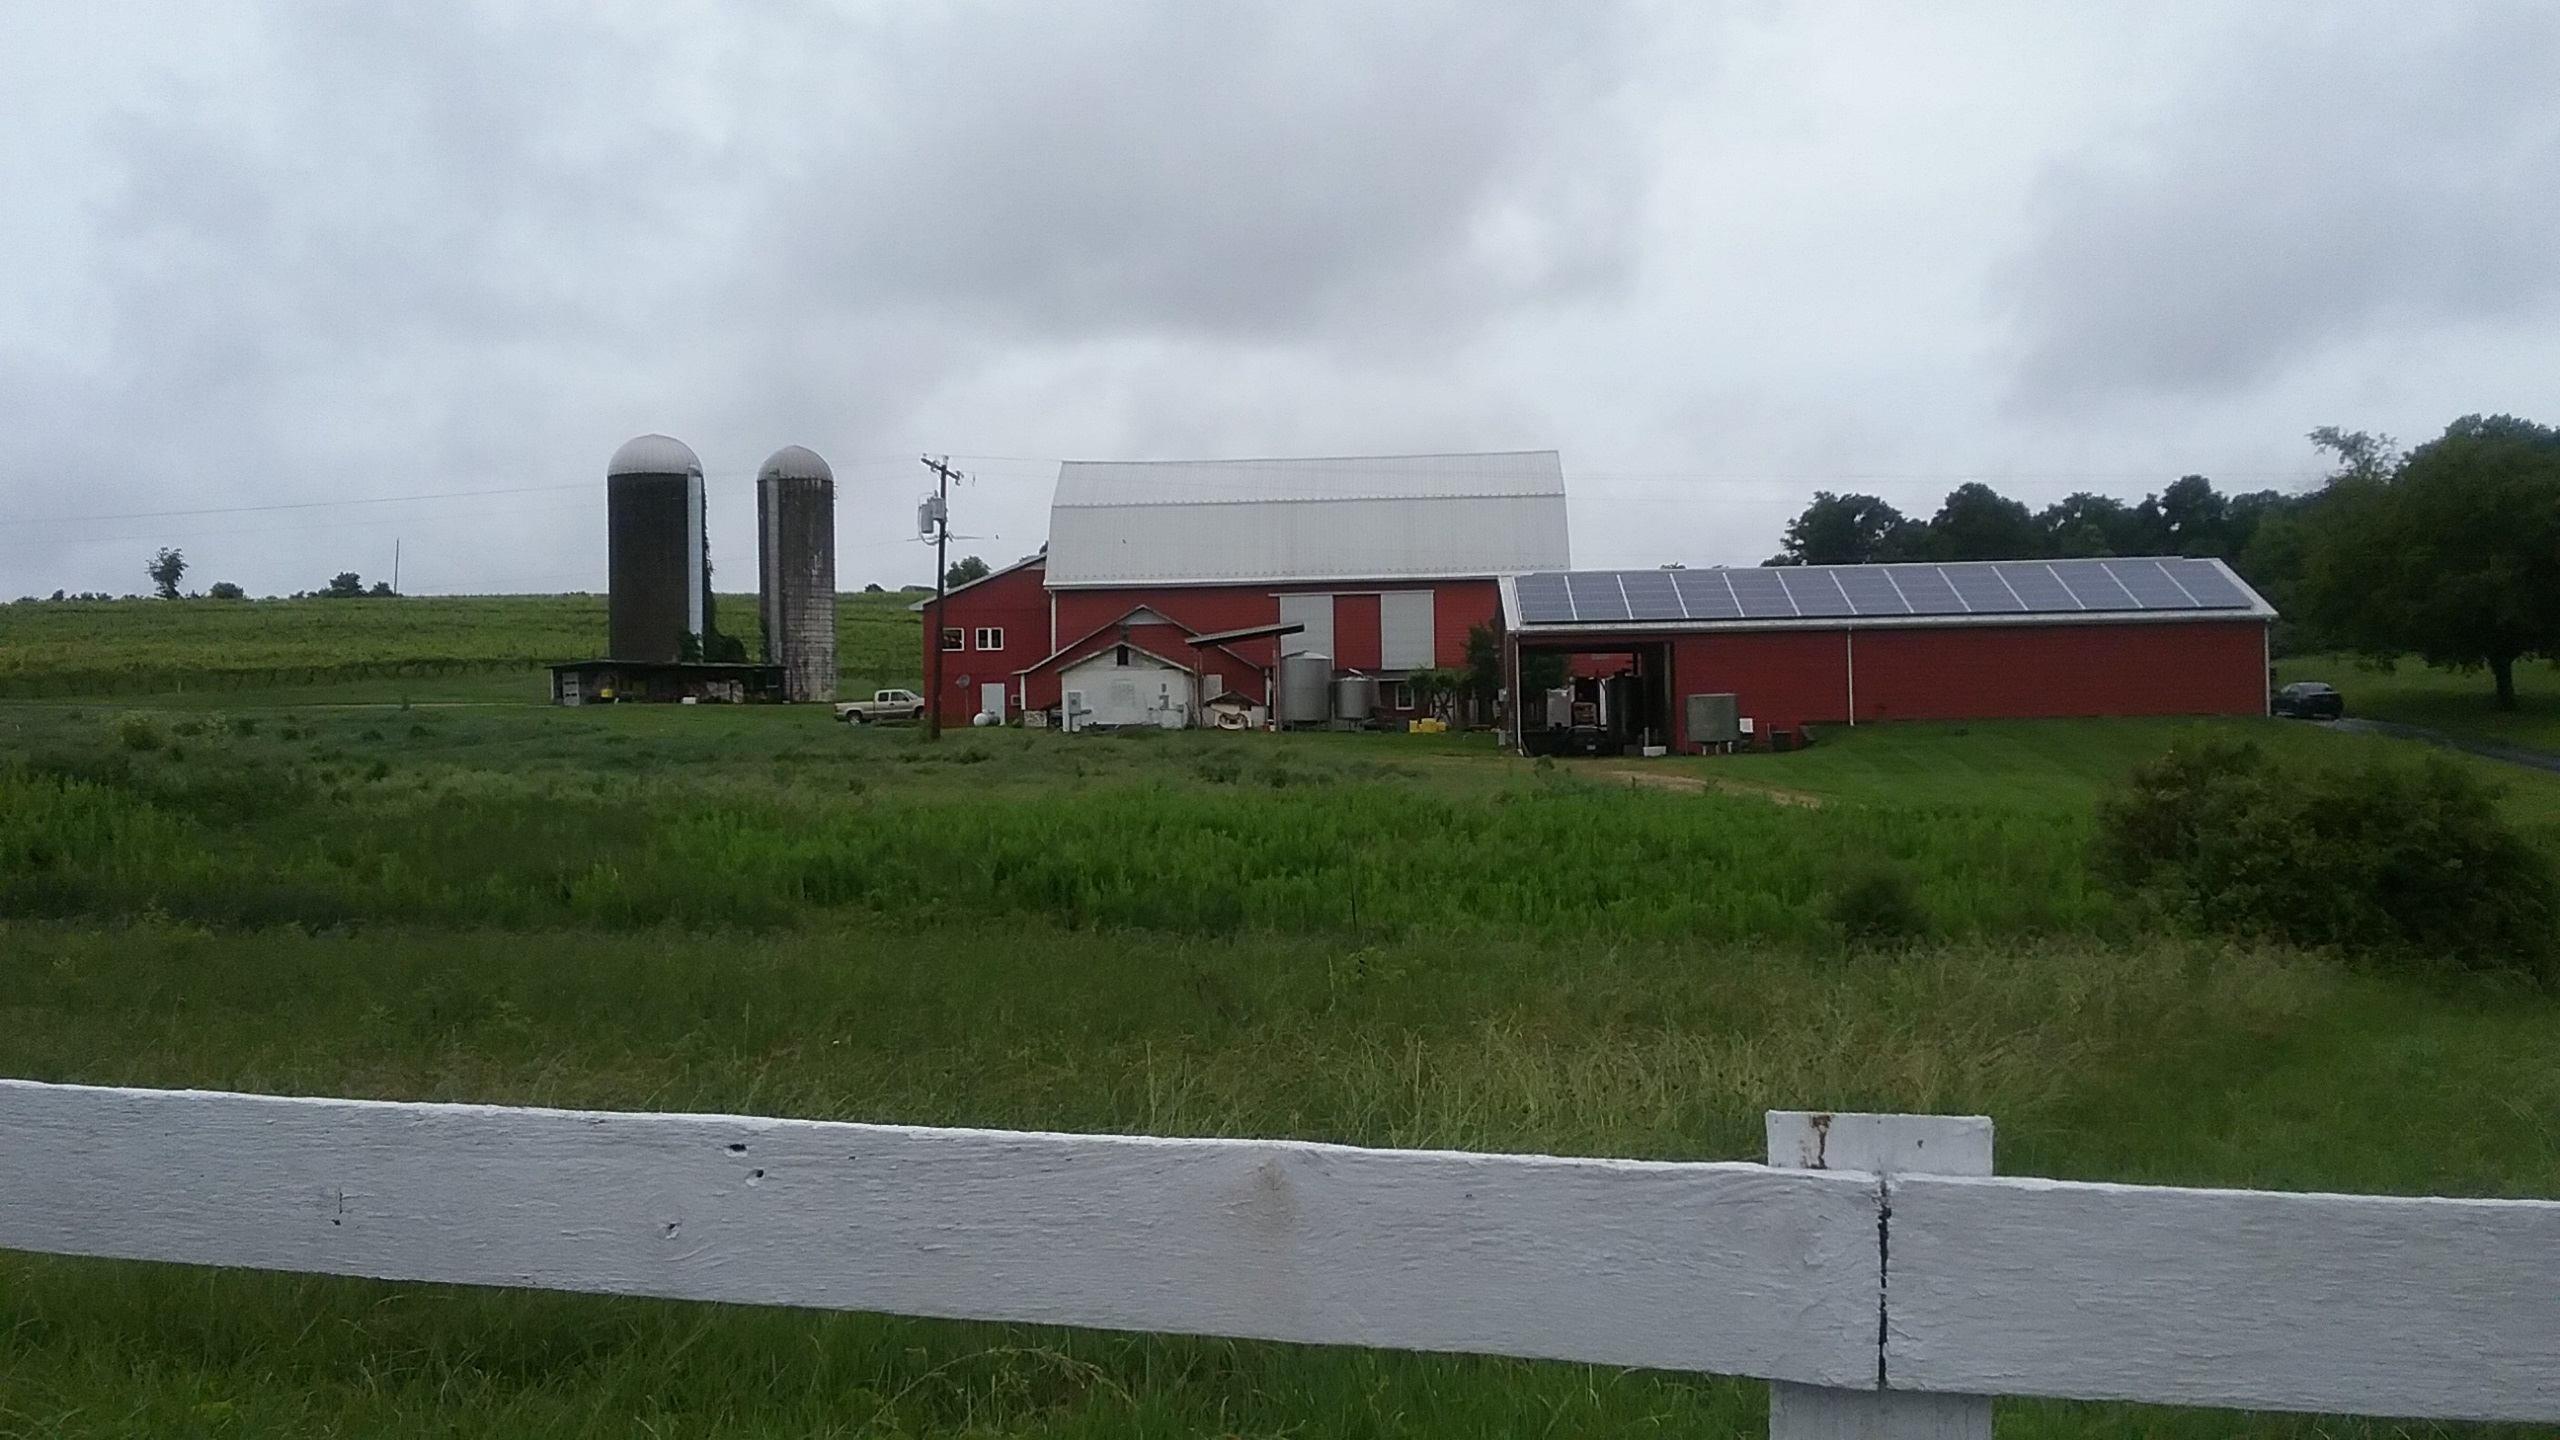 Farm in Tennessee